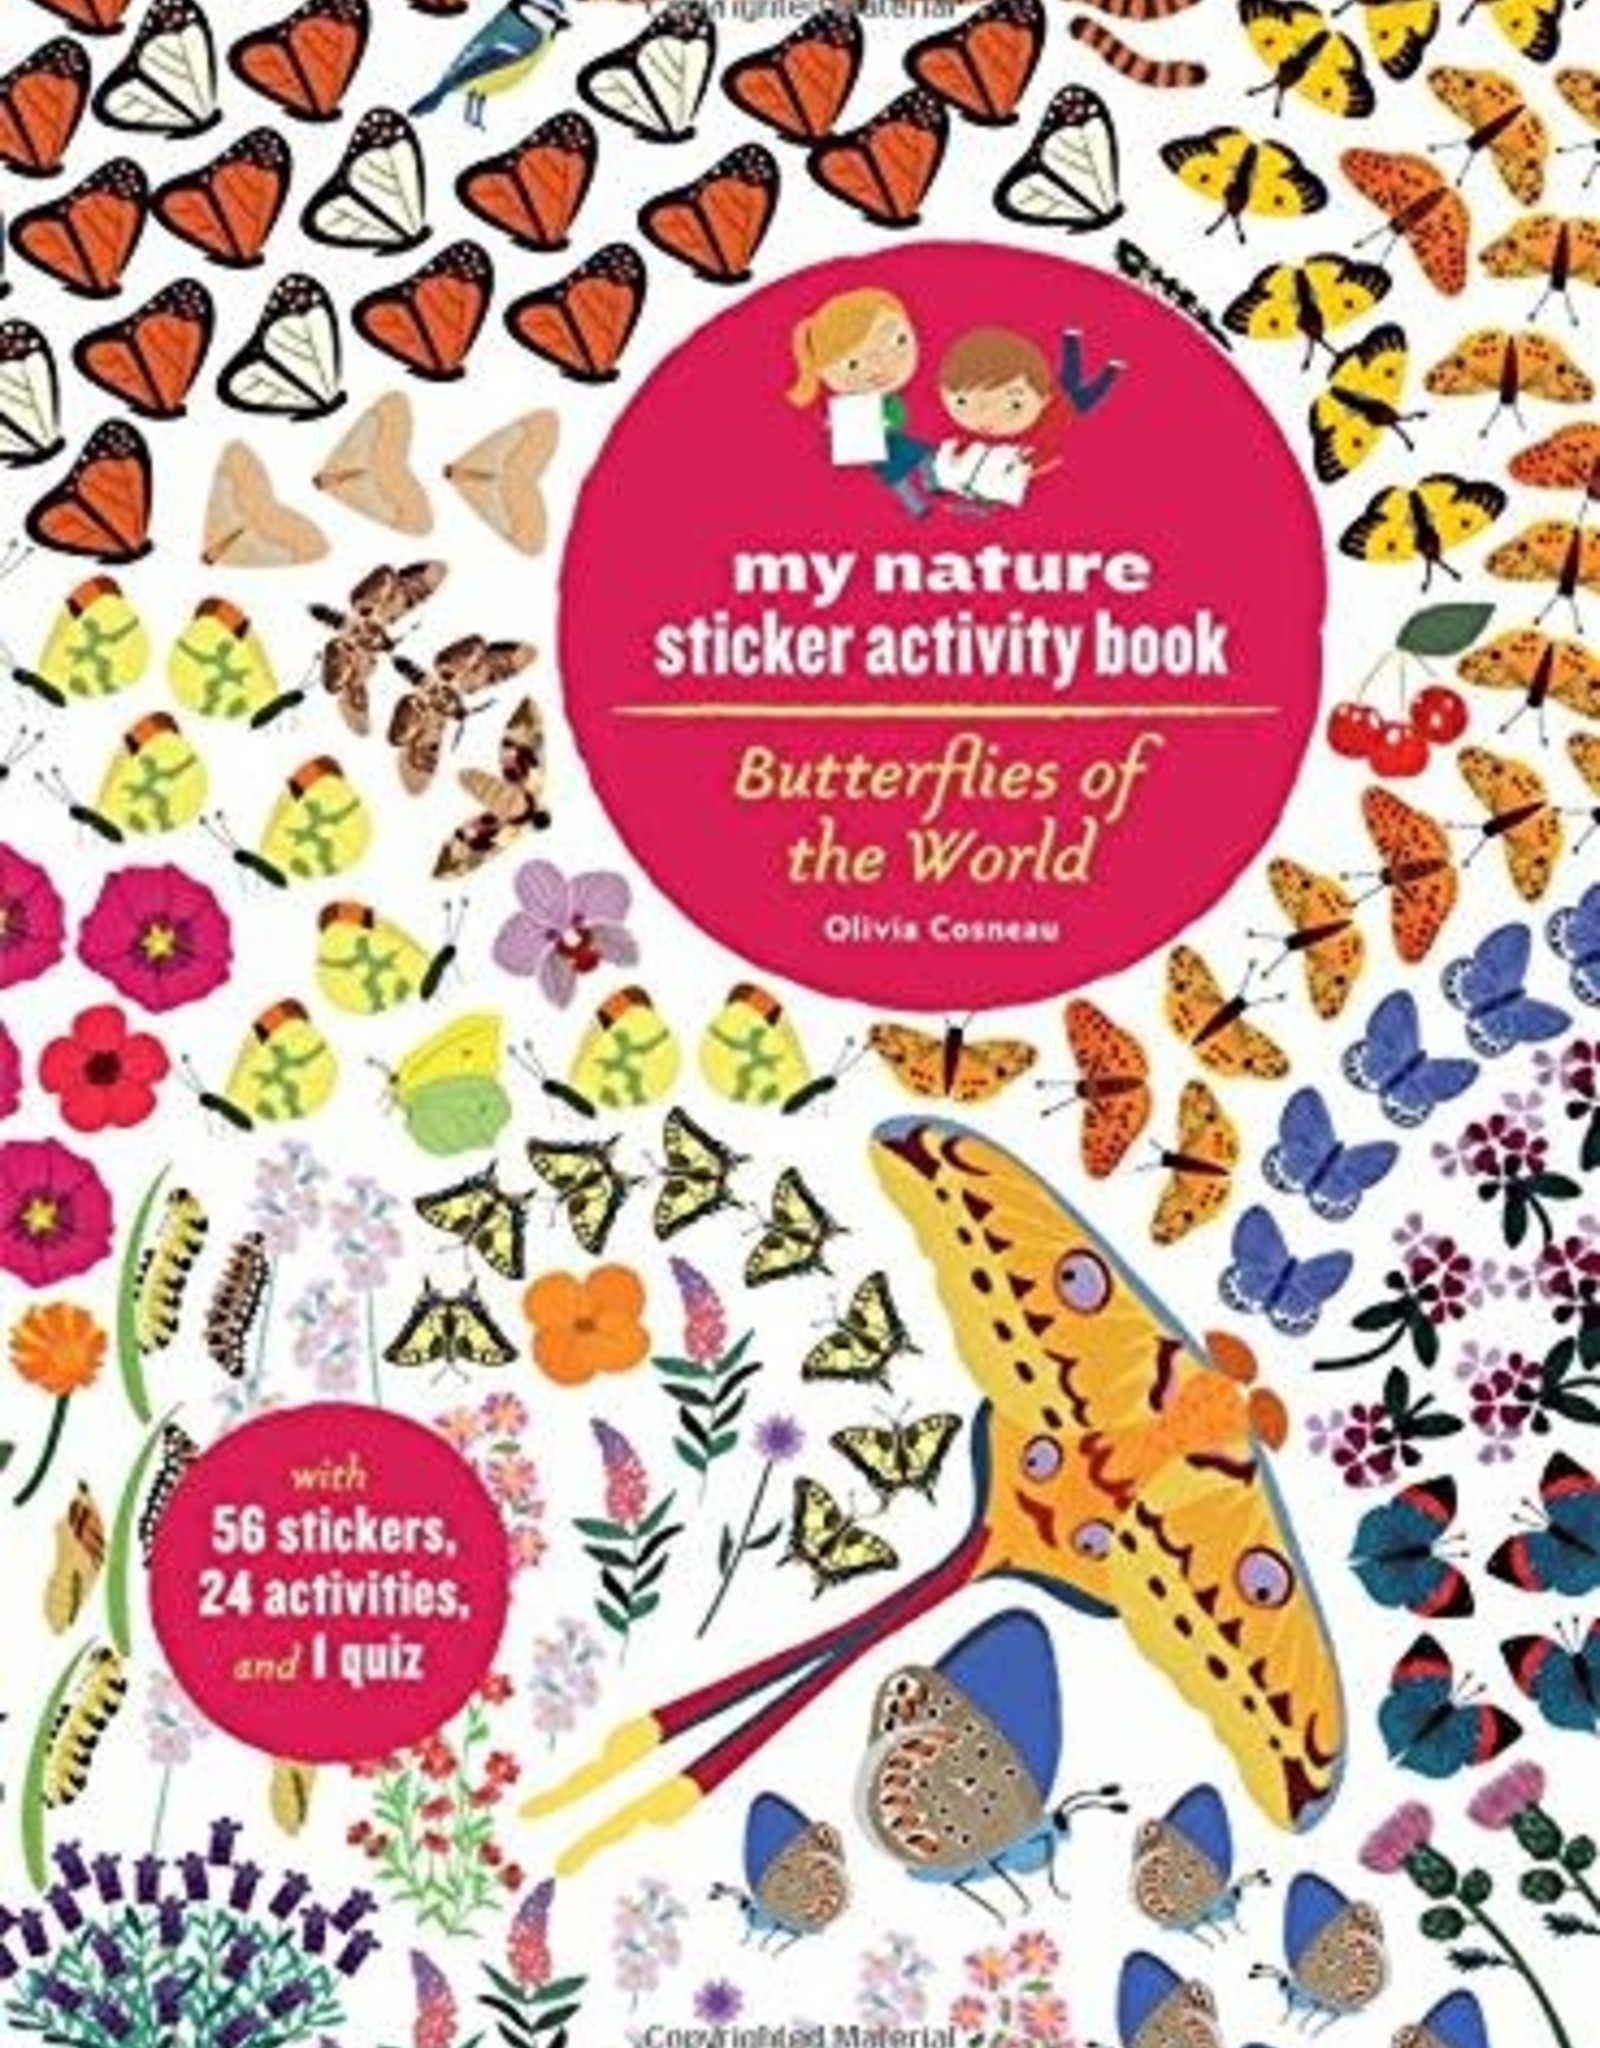 My Nature Sticker Activity Book - Butterflies of the World